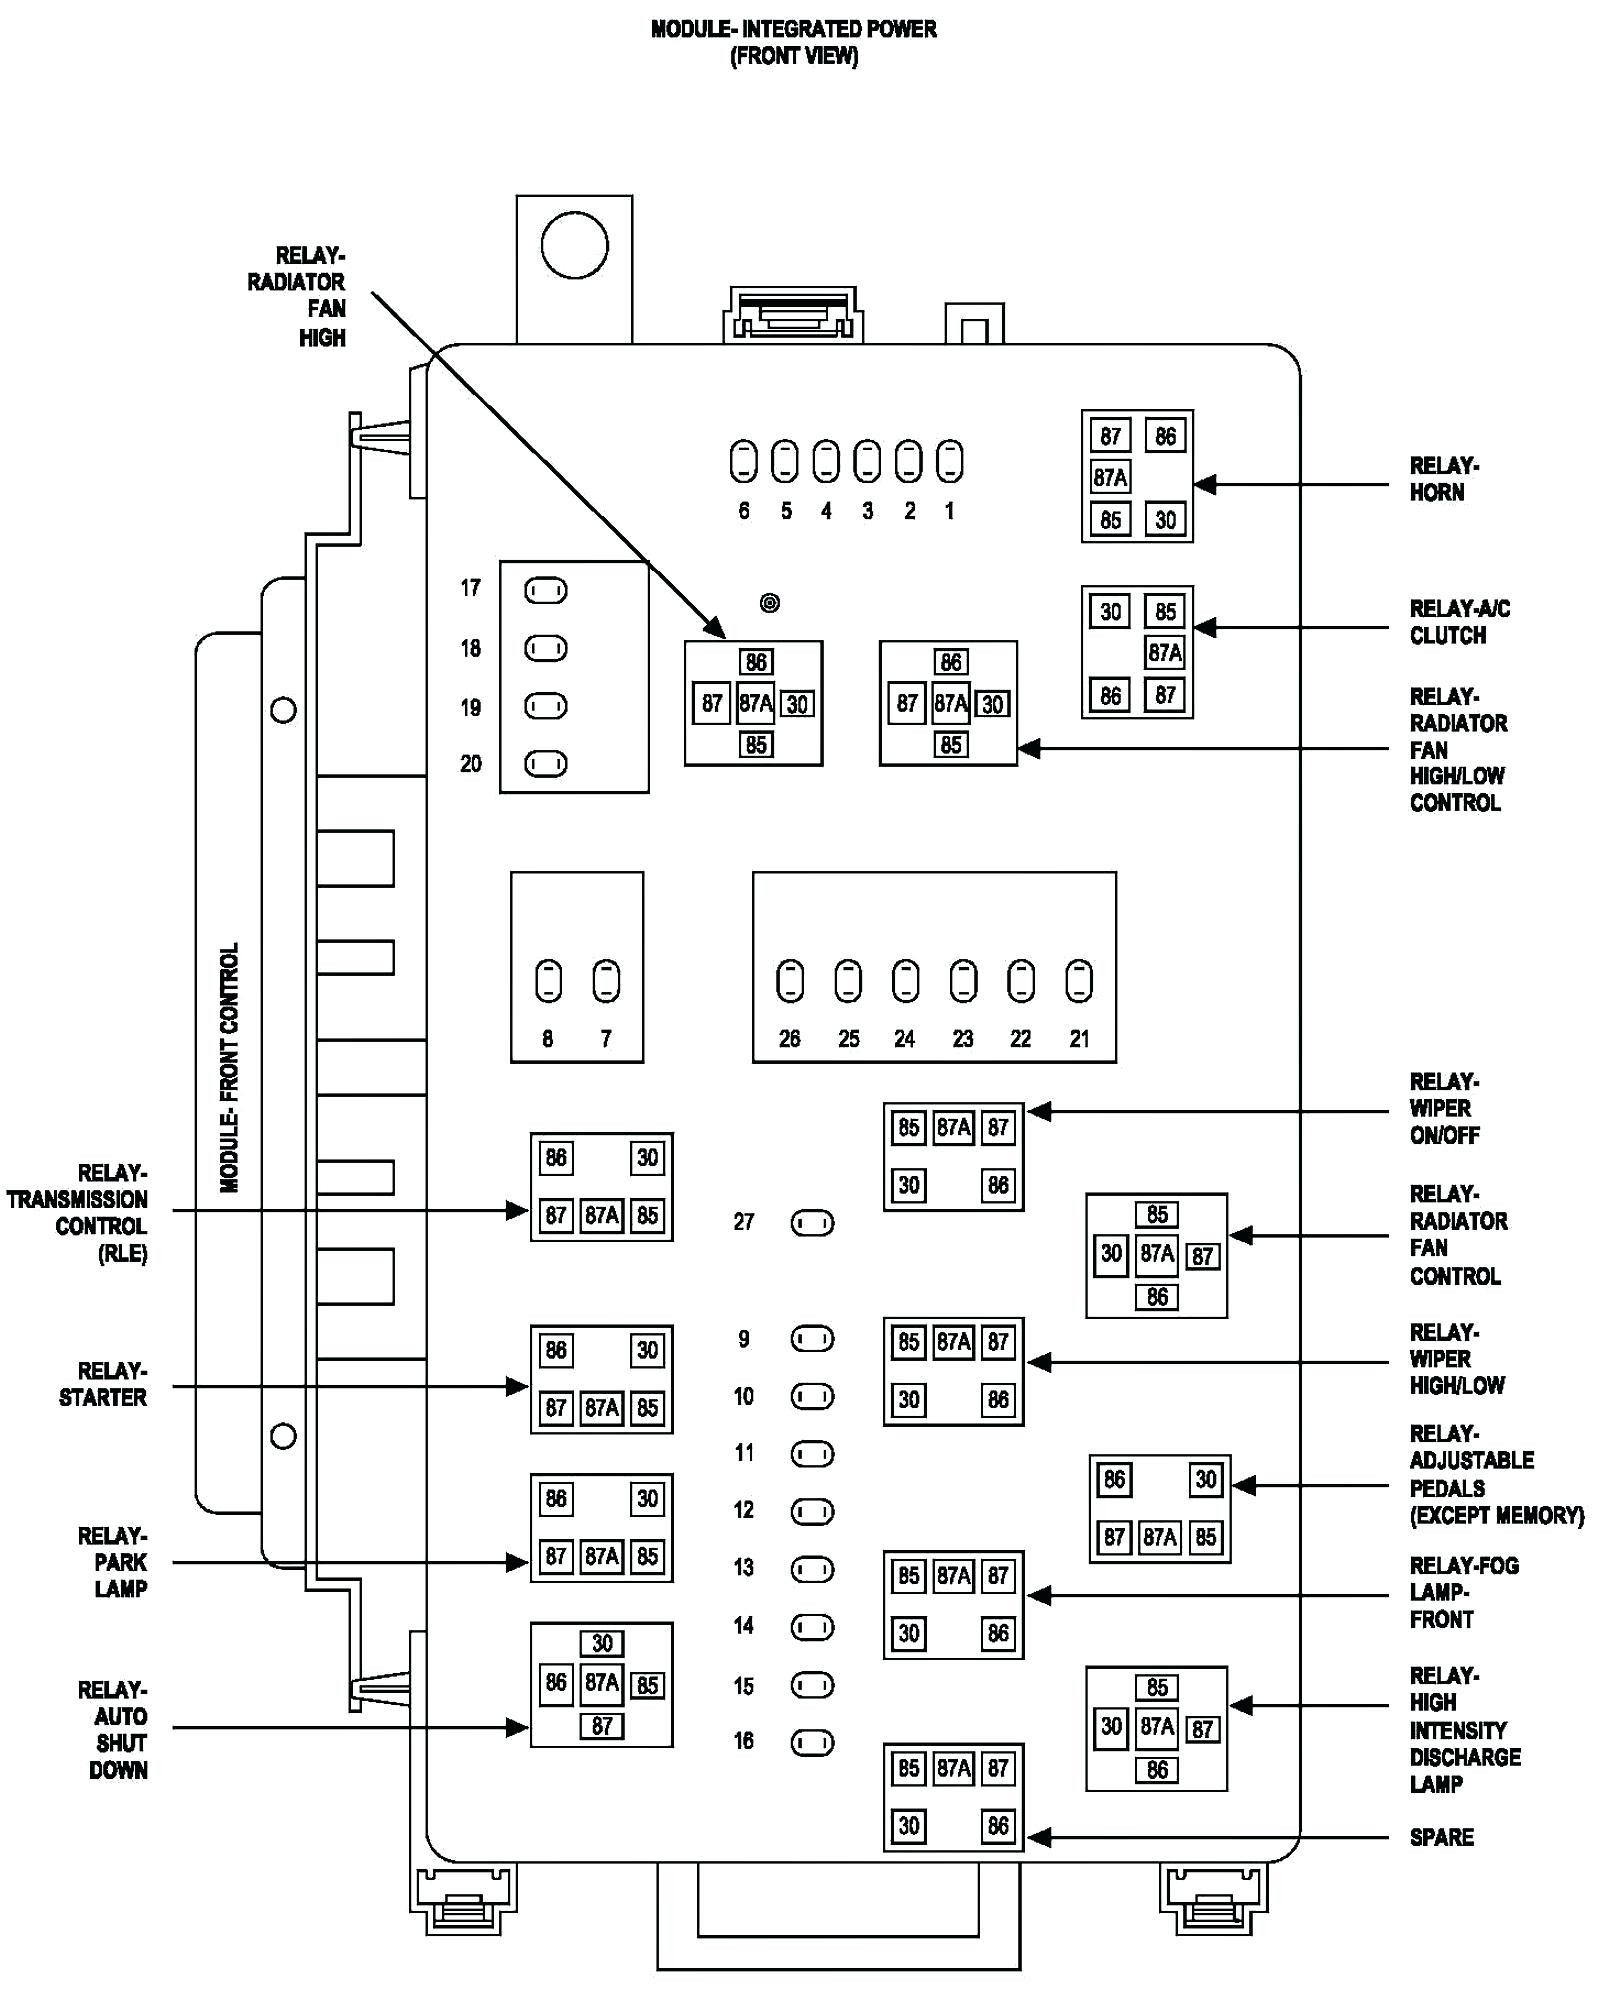 Dodge Neon Wiring Diagram 2007 Dodge Nitro Engine Wiring Diagram Dodge